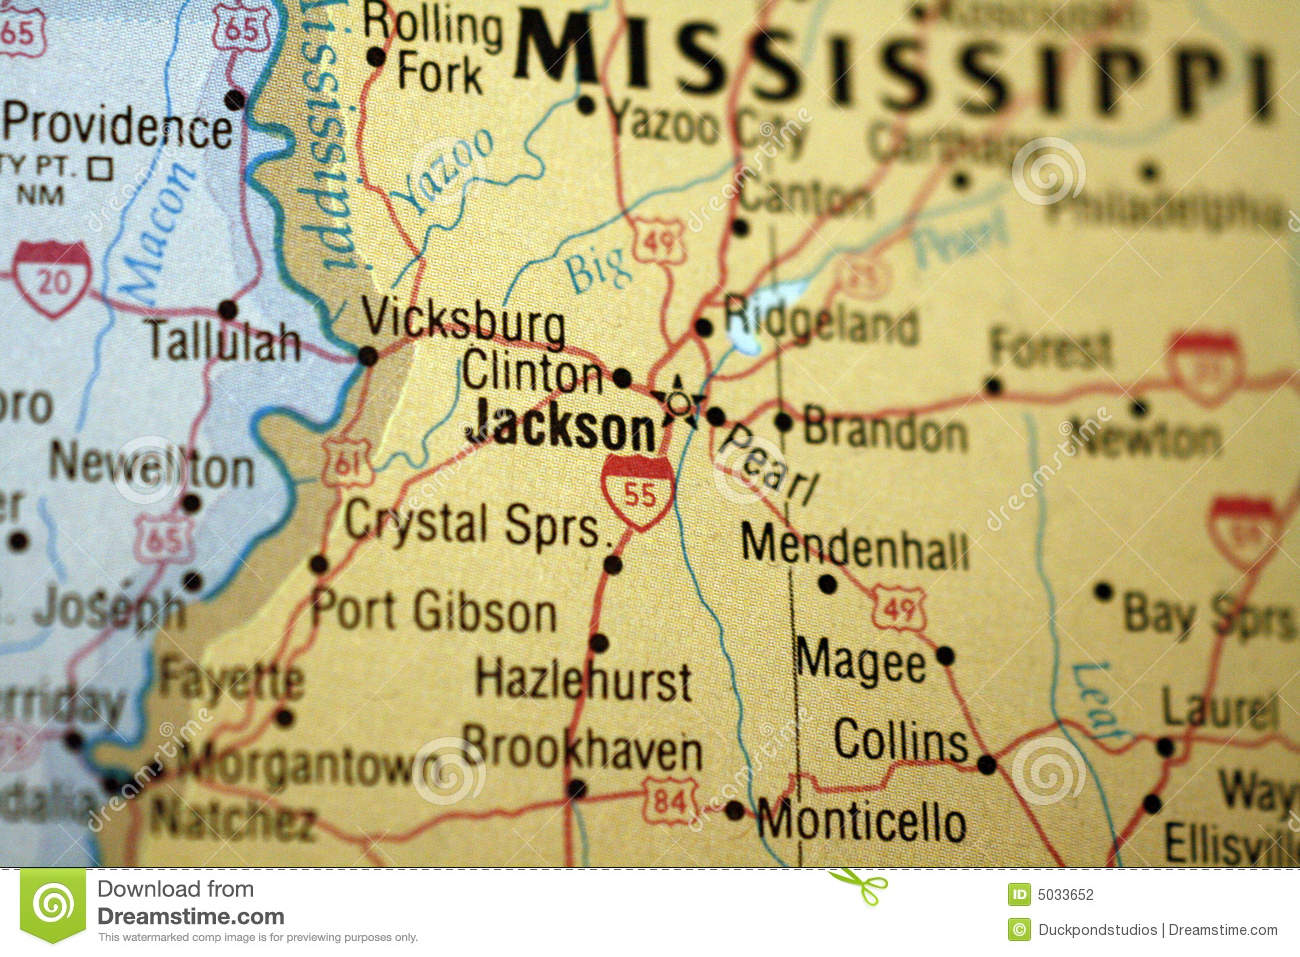 interstate 20 map with Photographie Stock Carte De Jackson Mississippi Image5033652 on File I 496 map moreover Barksdale as well Atlantainjurylawblog as well West End Looks At Prospect Of Fc Cincinnati Stadium With Hope And Caution furthermore Georgia.